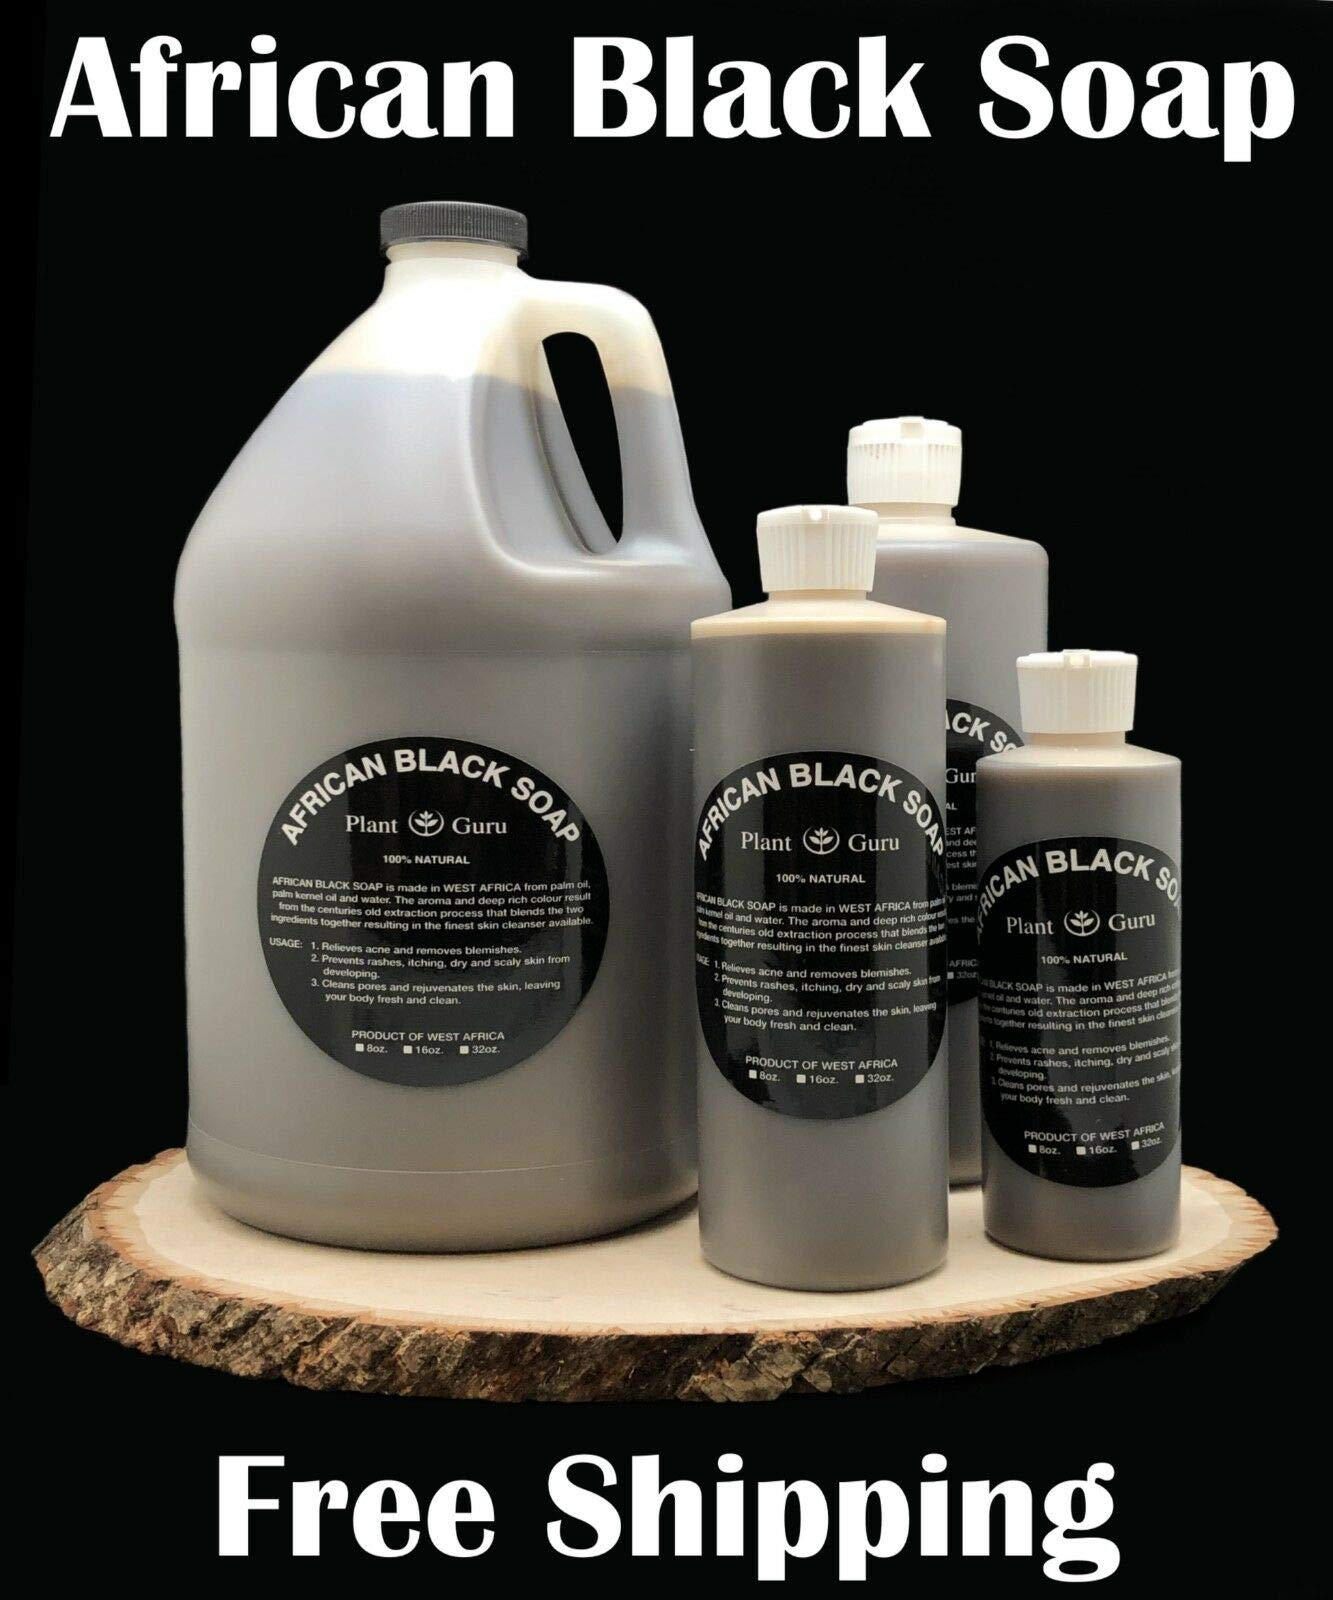 African Black Soap Liquid Gallon 100% Raw Pure Natural From Ghana, Acne Treatment, Aids Against Eczema & Psoriasis, Dry Skin, Scar and Dark spot Removal, Pimples and Blackhead, Face & Body Wash by Plant Guru (Image #2)